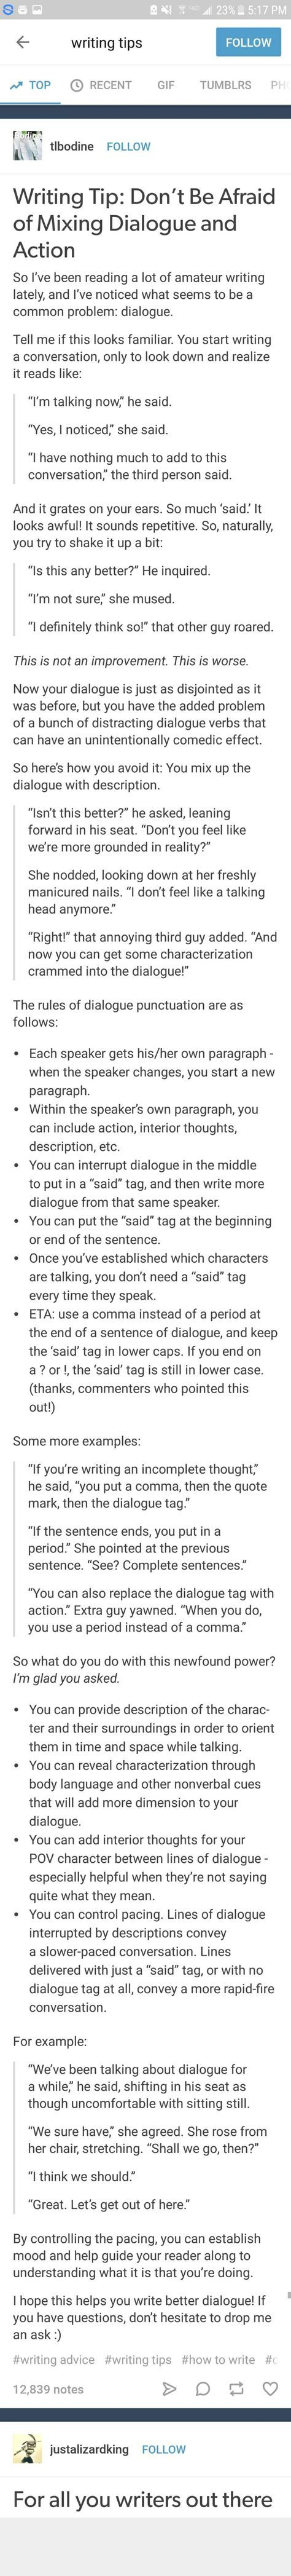 This is the best advice on writing dialogue I've seen tbh. Also short and easy to understand!